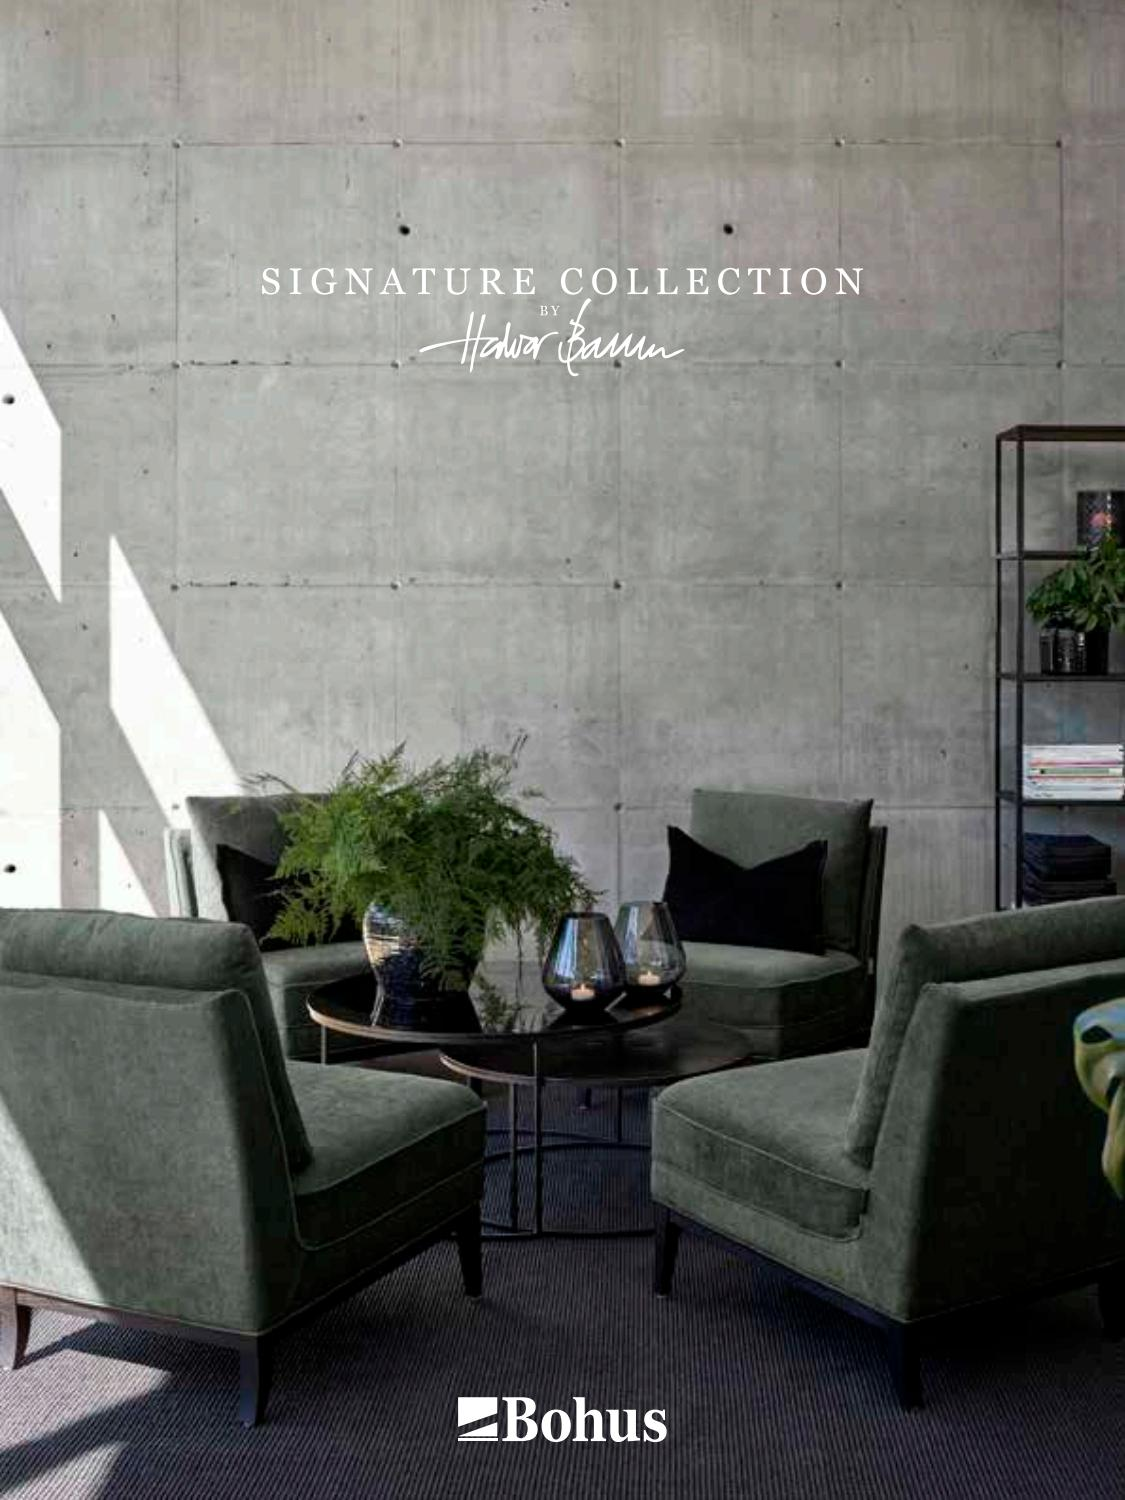 Signature Collection 2018 By Mistrol Reklamebyra Issuu